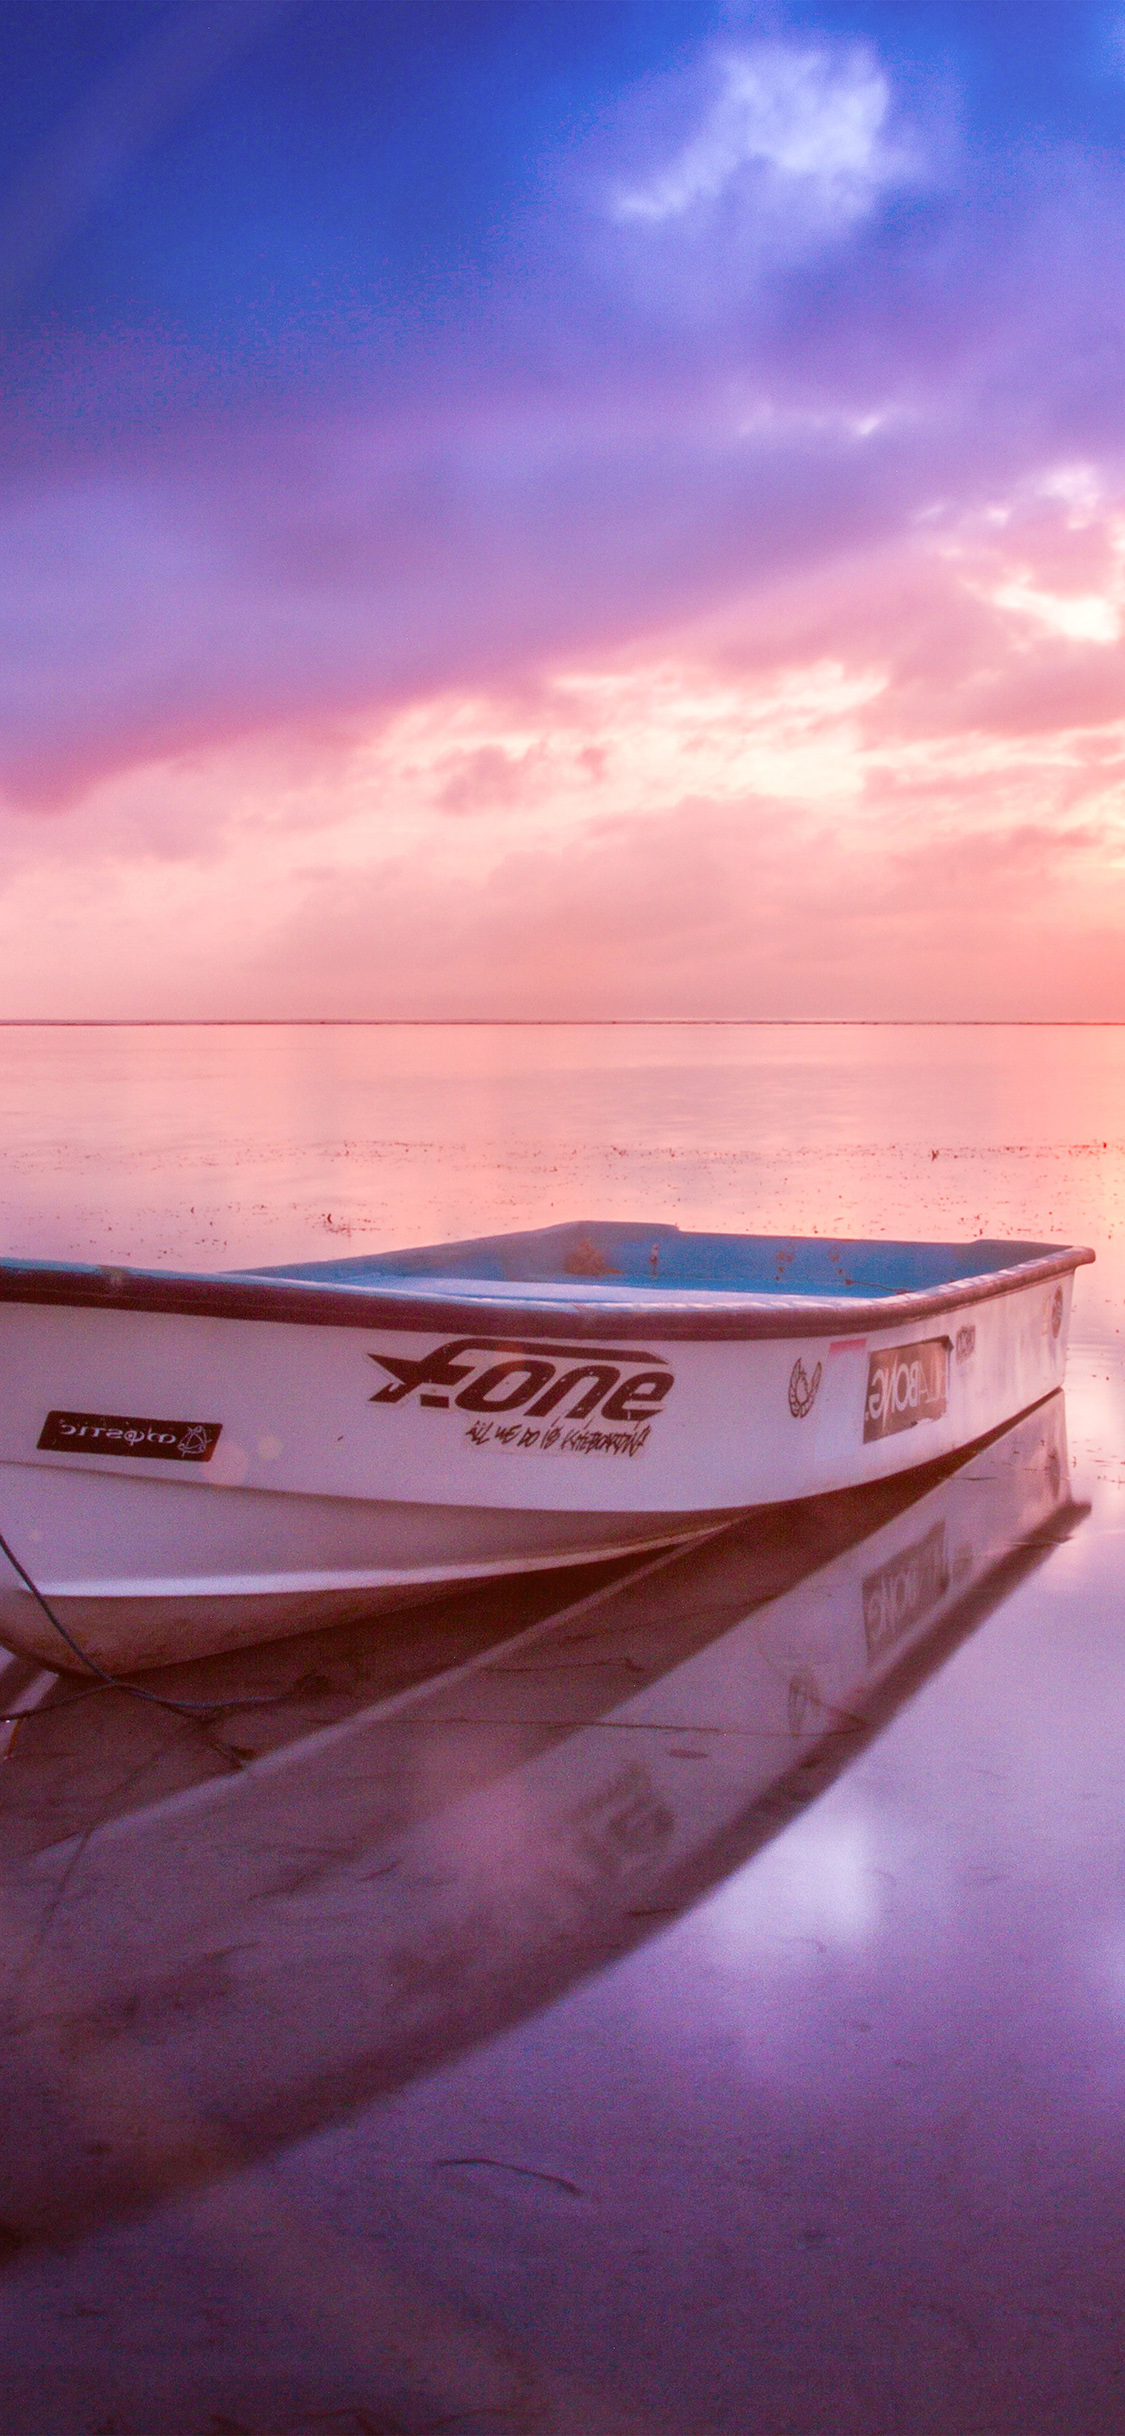 Iphone11papers Com Iphone11 Wallpaper Nm00 Nature Sea Beach Boat Alone Sunset Blue Pink Flare